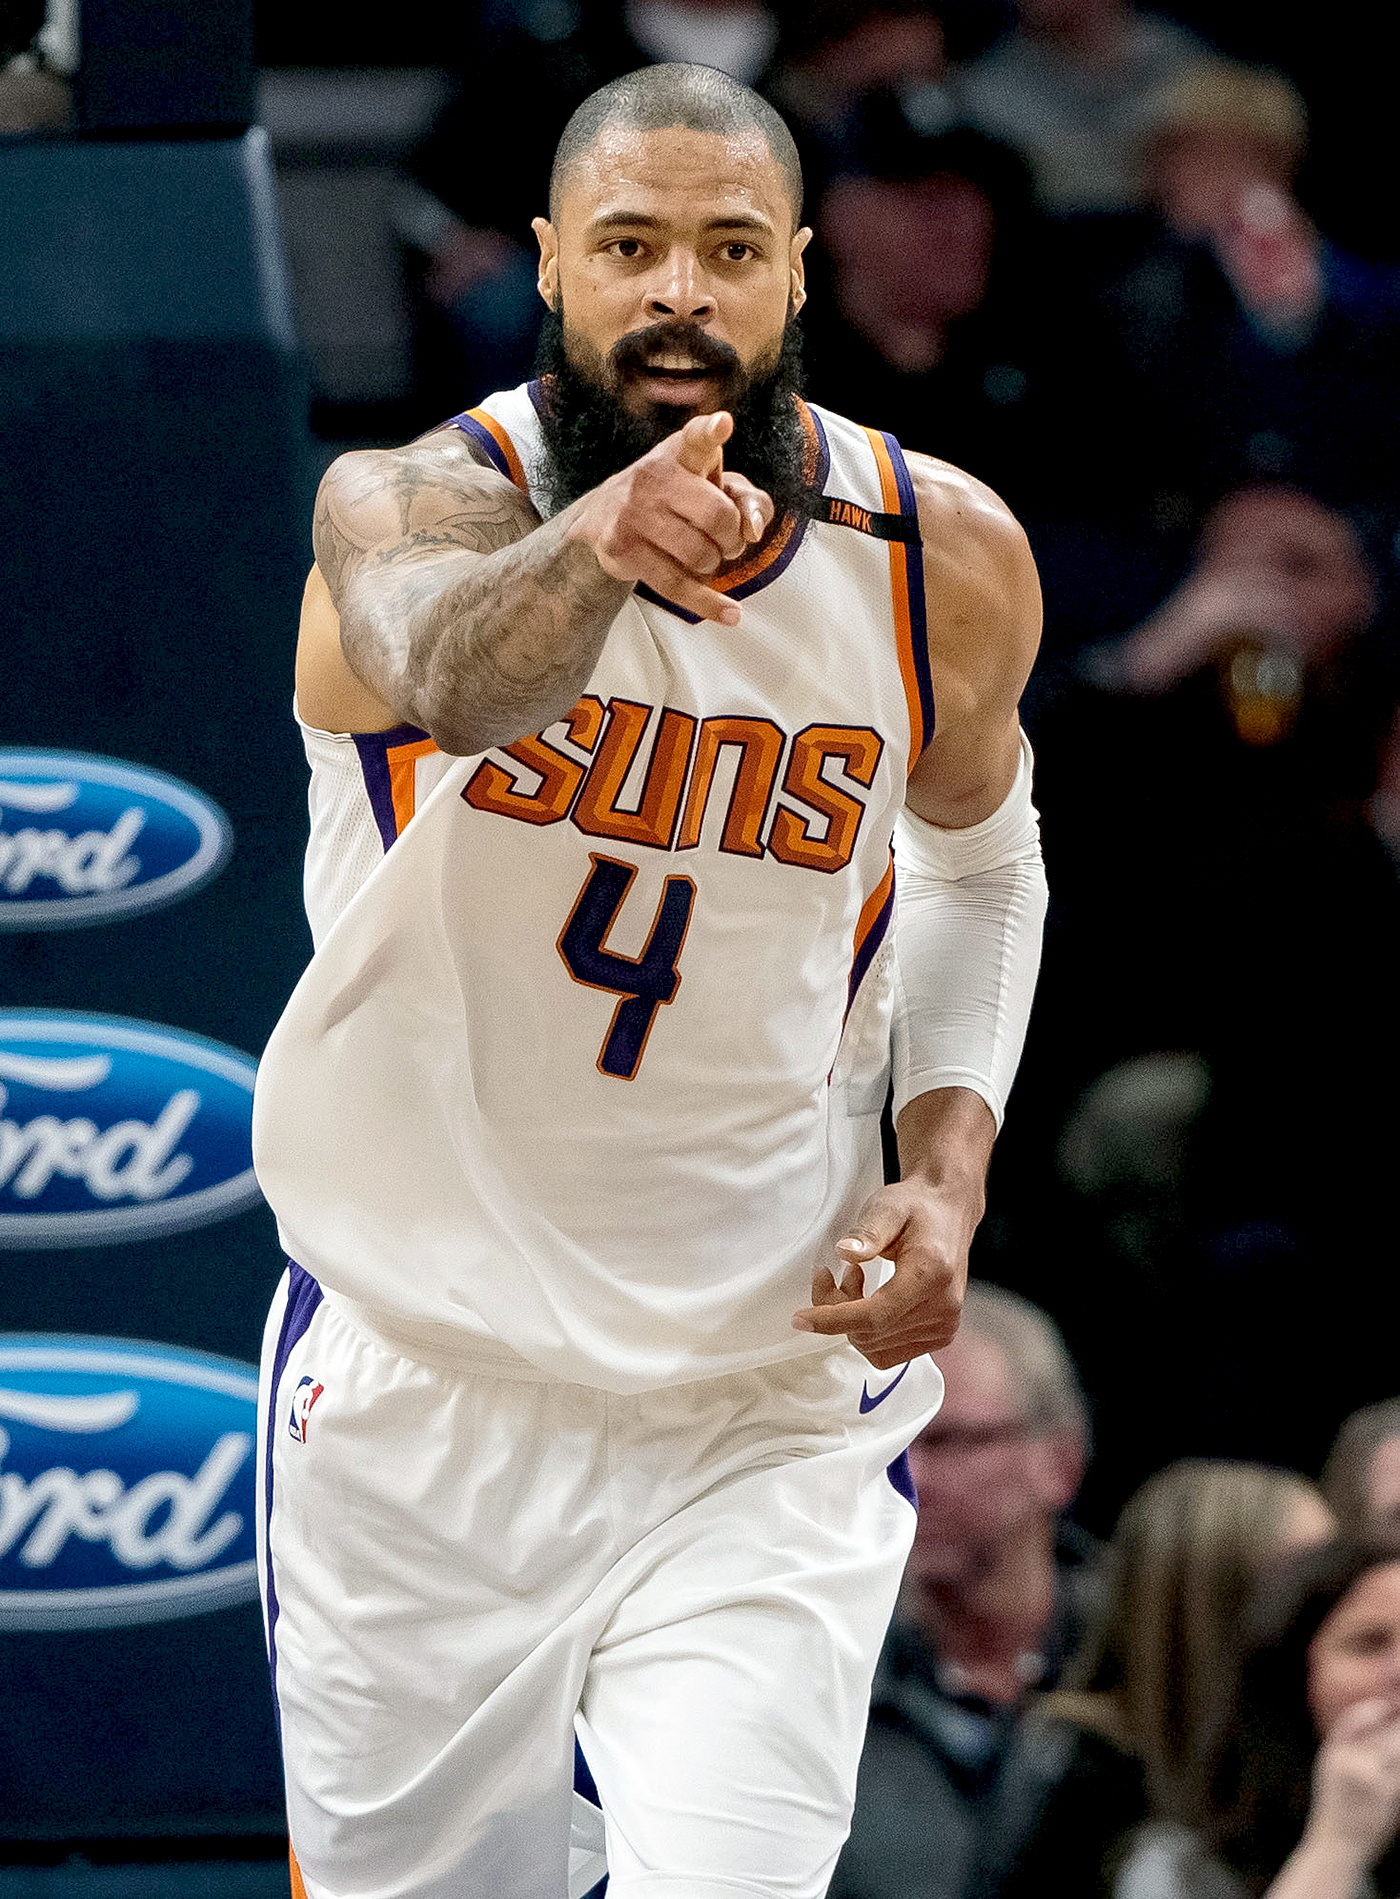 02b3b306fad Reports: Tyson Chandler expected to sign with Lakers after Suns' buyout    NBA.com